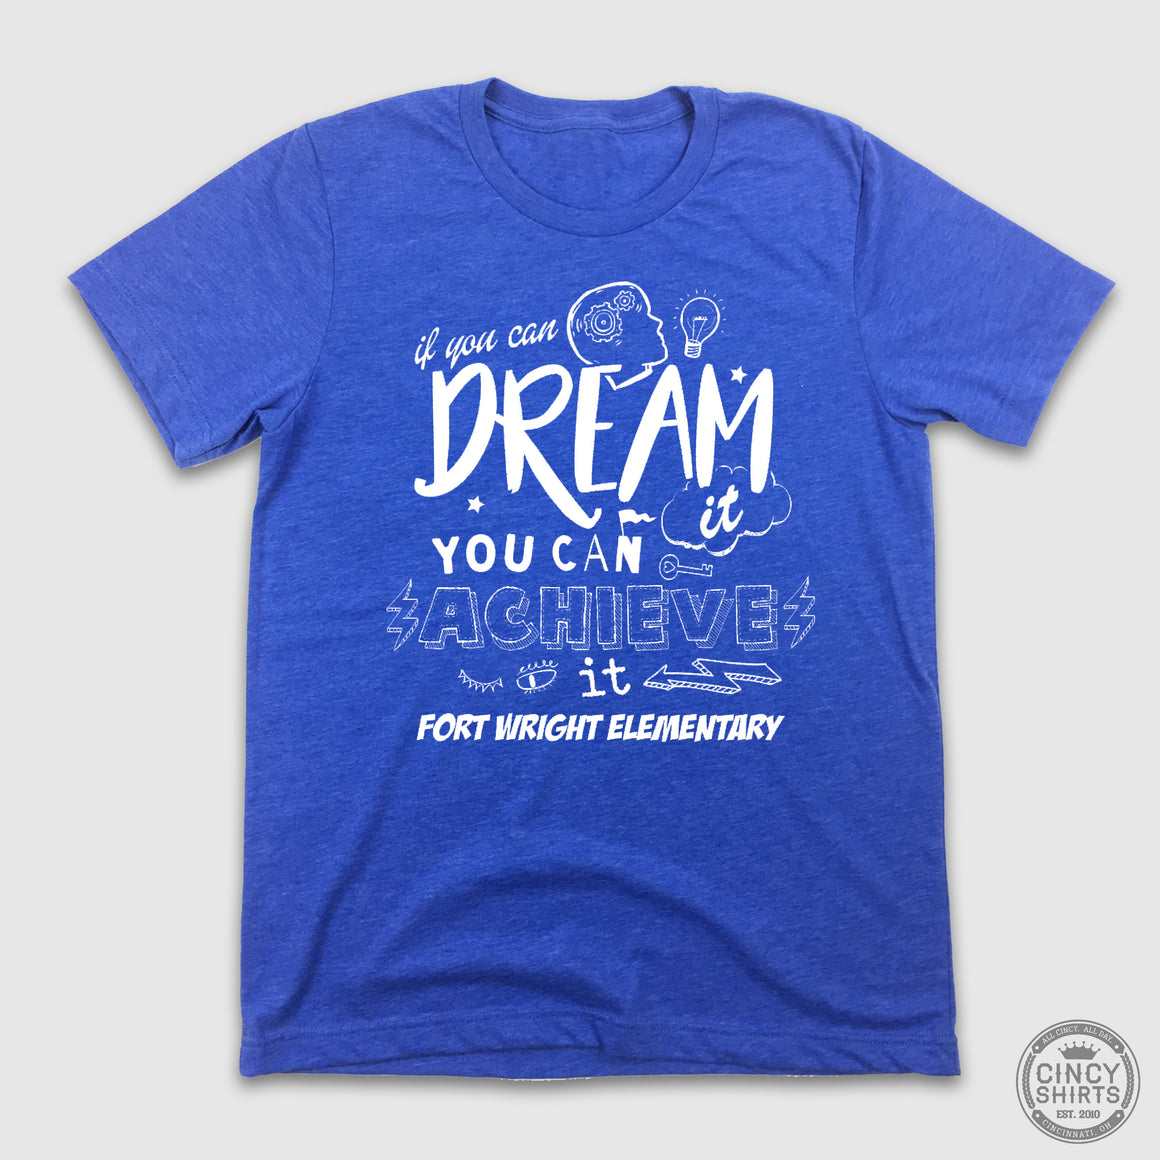 Fort Wright Falcons - Dream It and Achieve It - Adult & Youth Sizes - Cincy Shirts